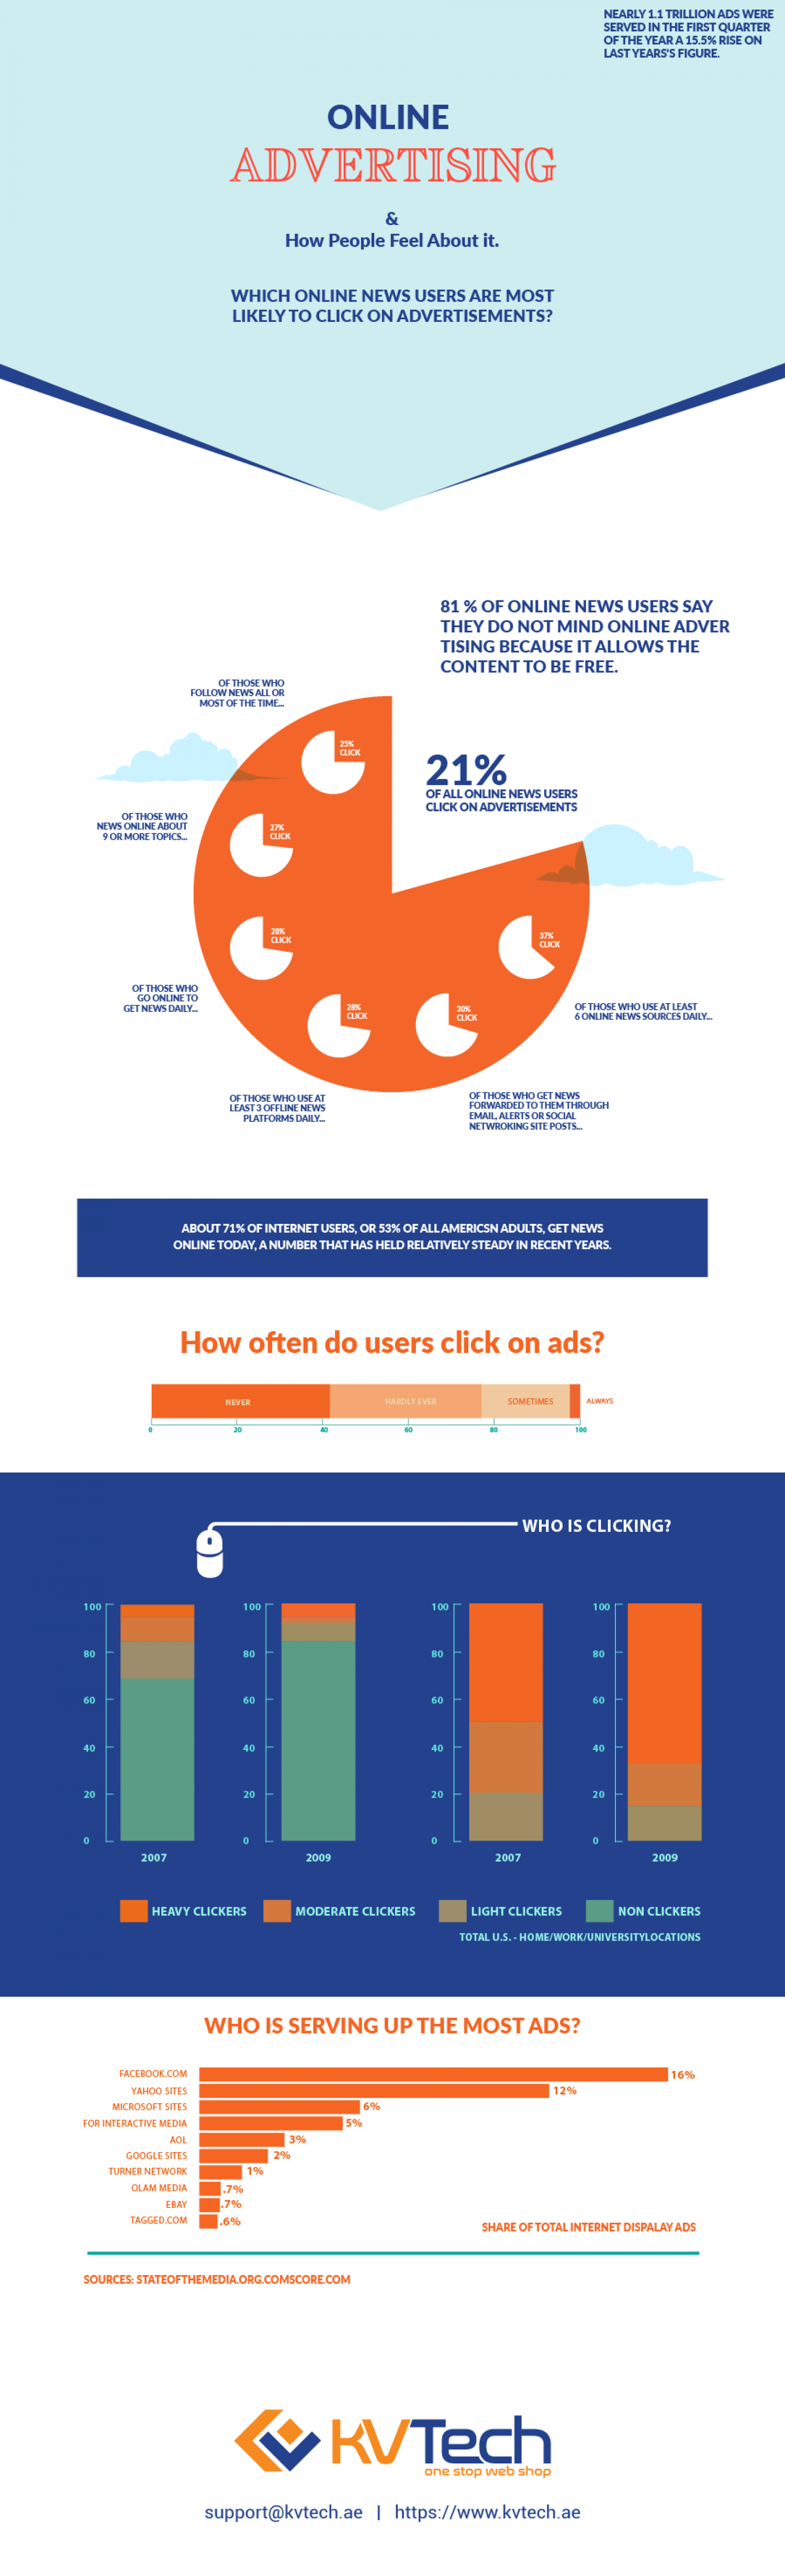 Online Advertising & how people feel about it? Infographic